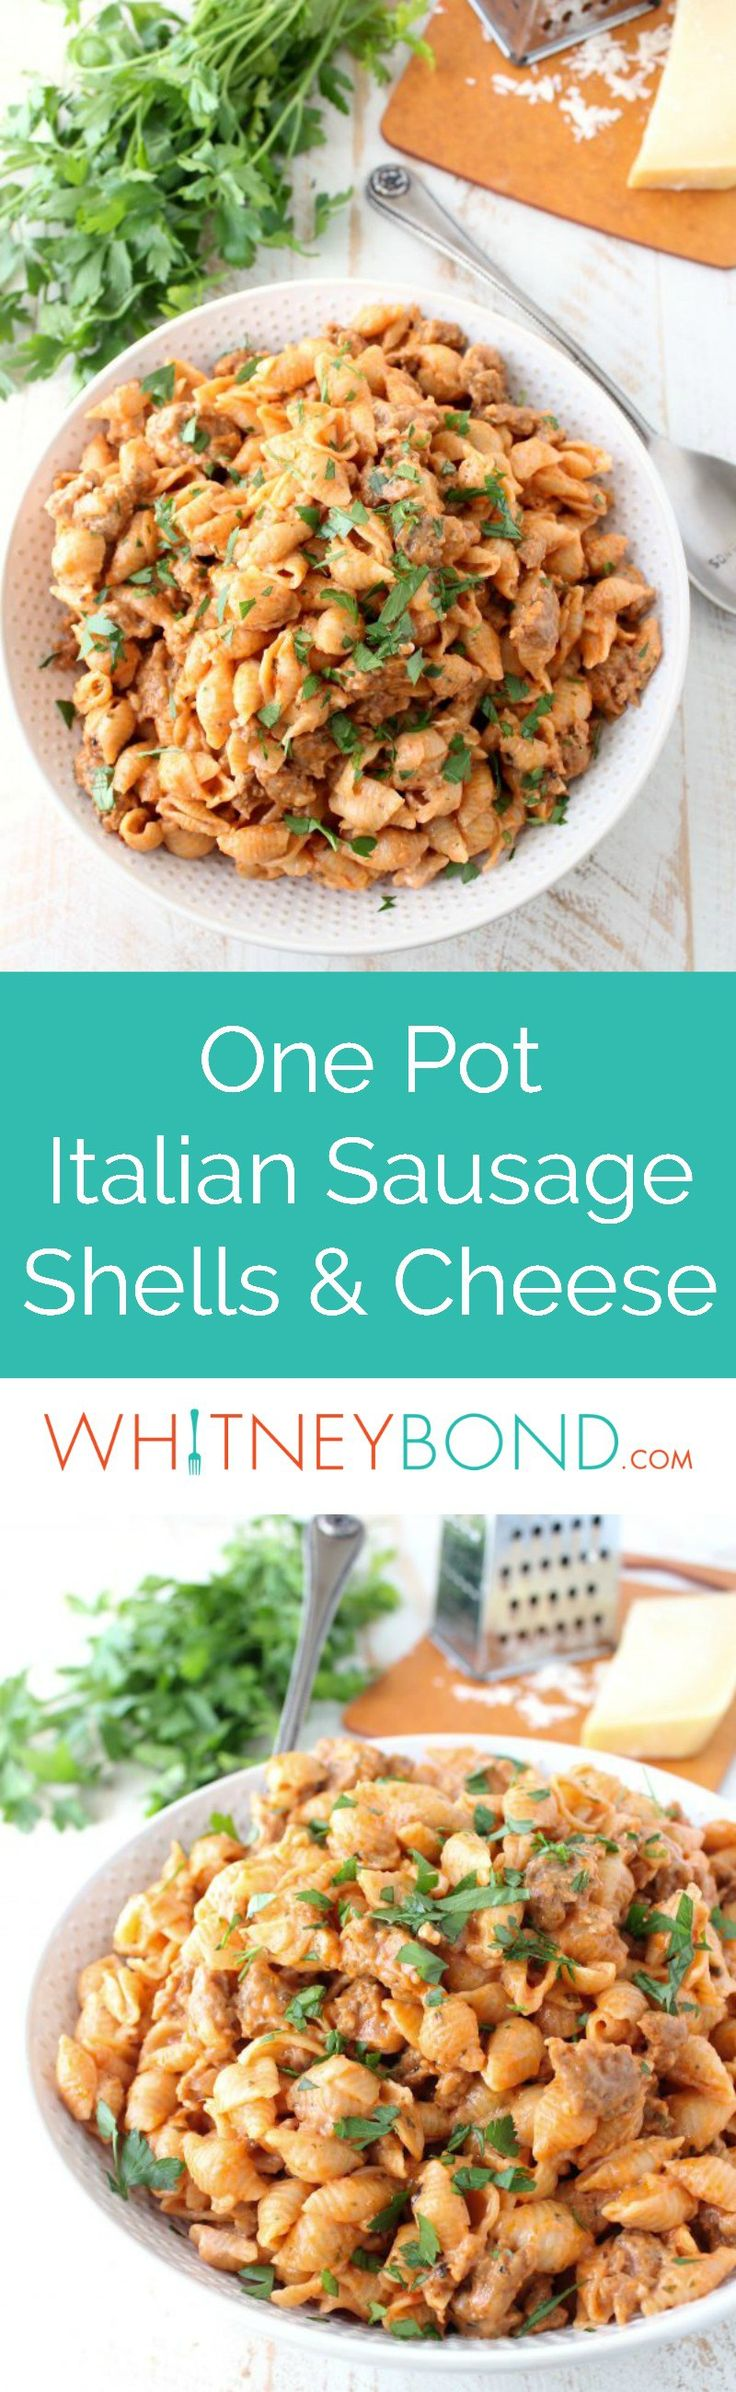 In one pot and under 45 minutes, prepare this Italian style Shells and Cheese recipe, filled with flavorful sausage, tomato sauce, and three cheeses! The @worldmarket Large White Textured Stoneware Bowl is perfect for serving this delicious mac and cheese recipe! #WorldMarketTribe - WhitneyBond.com